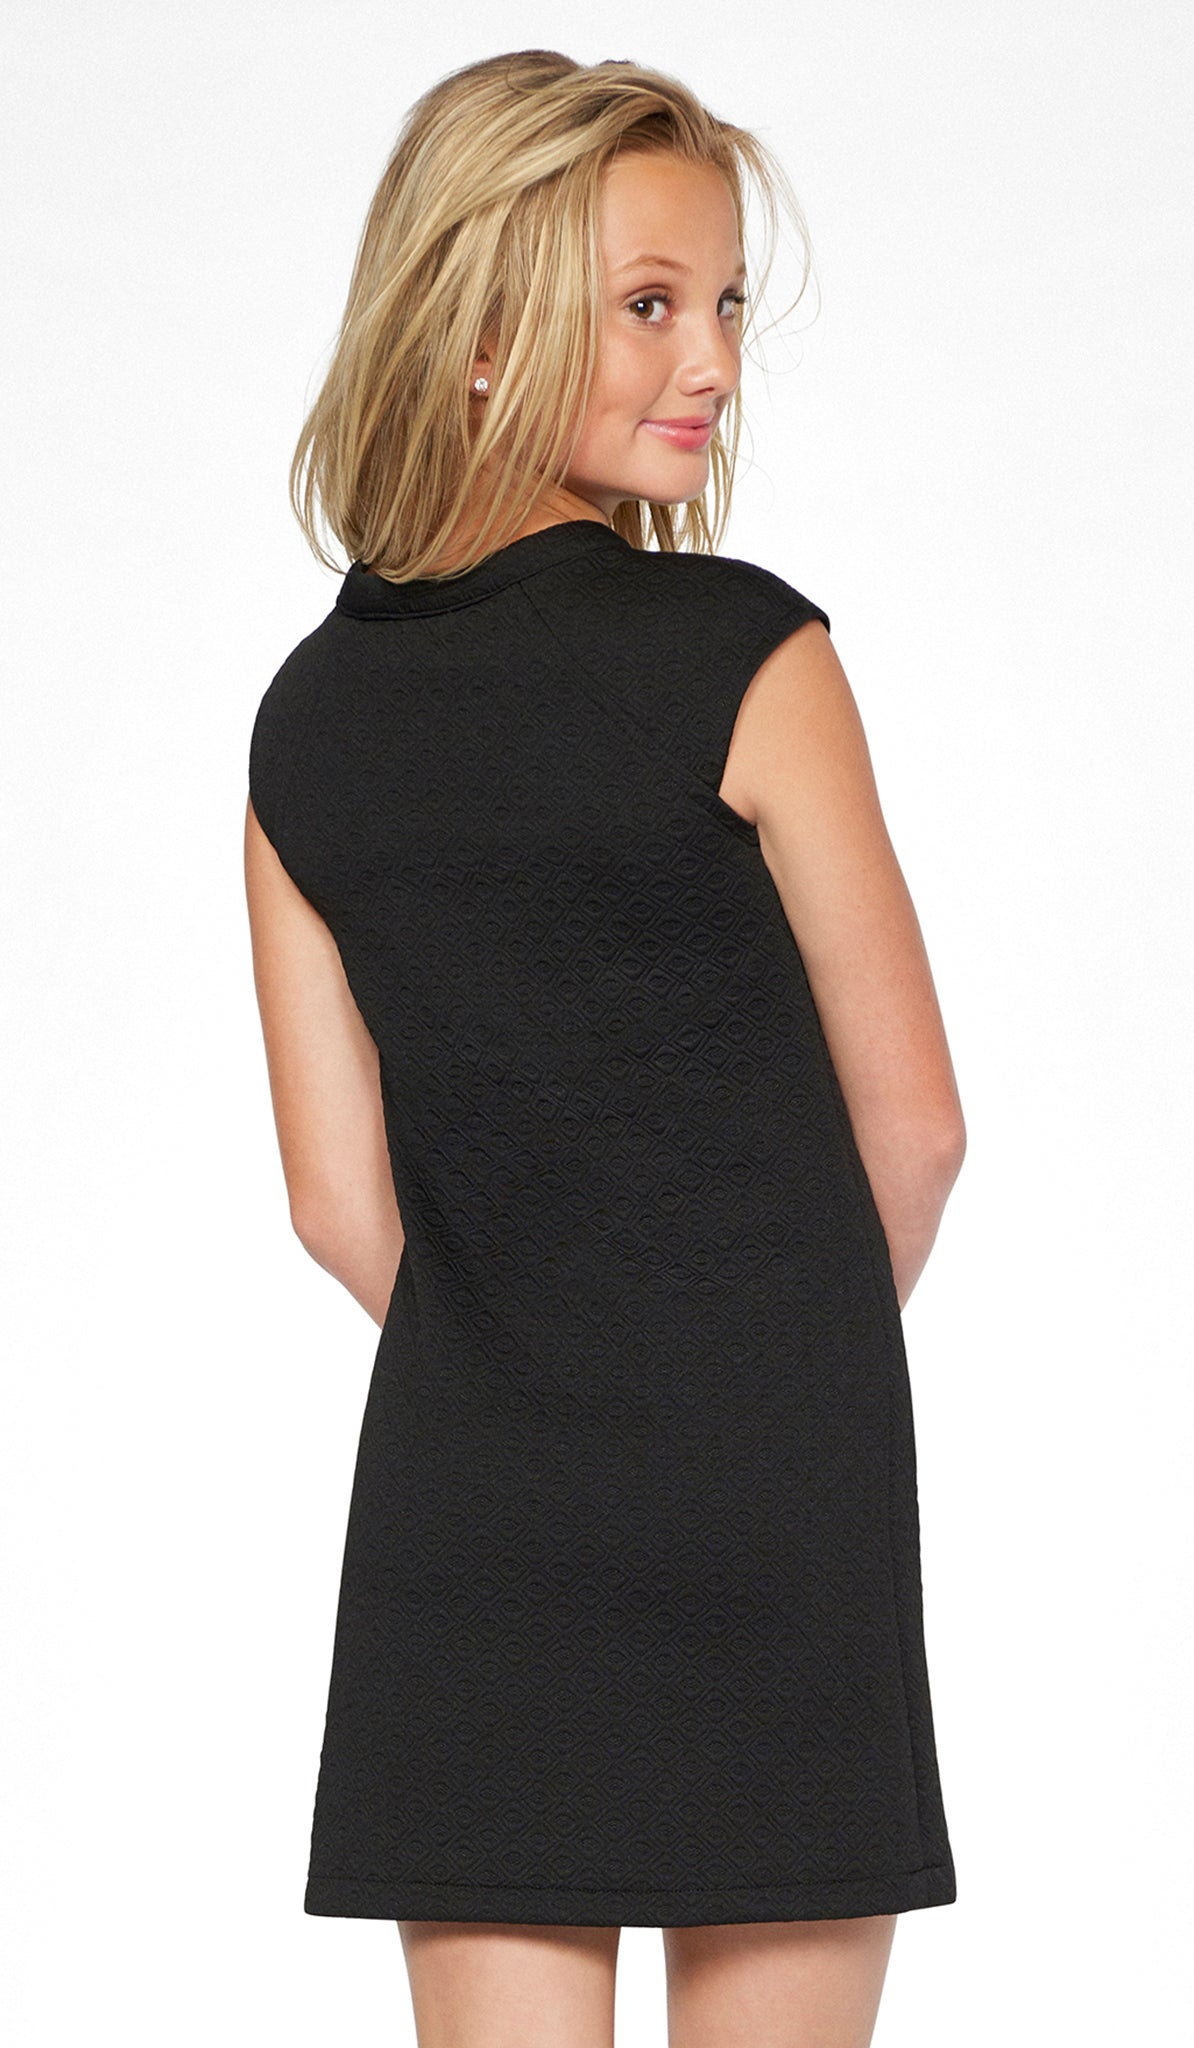 Sally Miller tween black and ivory shift knit special occasion dress back view..